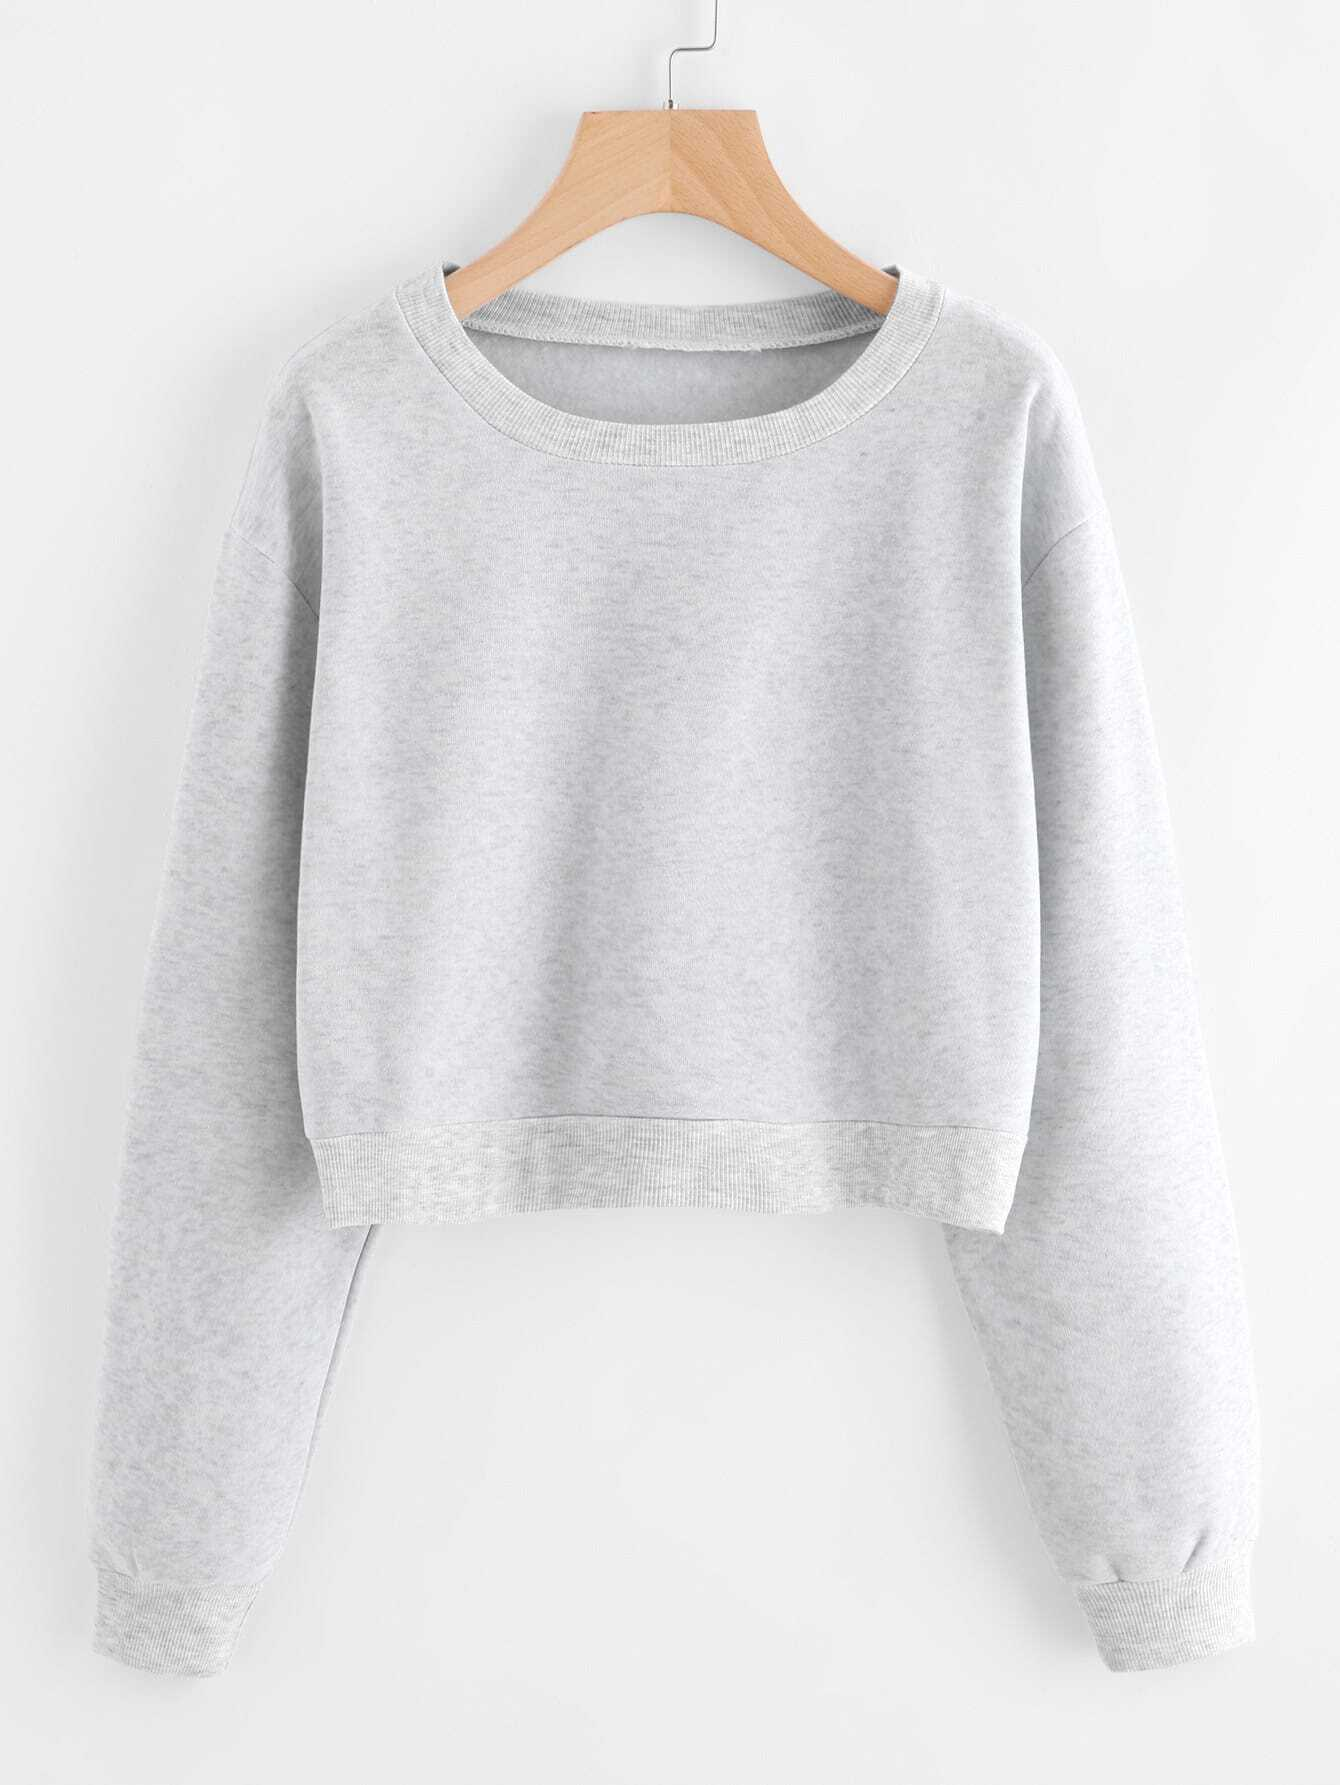 Drop Shoulder Ribbed Trim Crop Pullover sweatshirt170925103